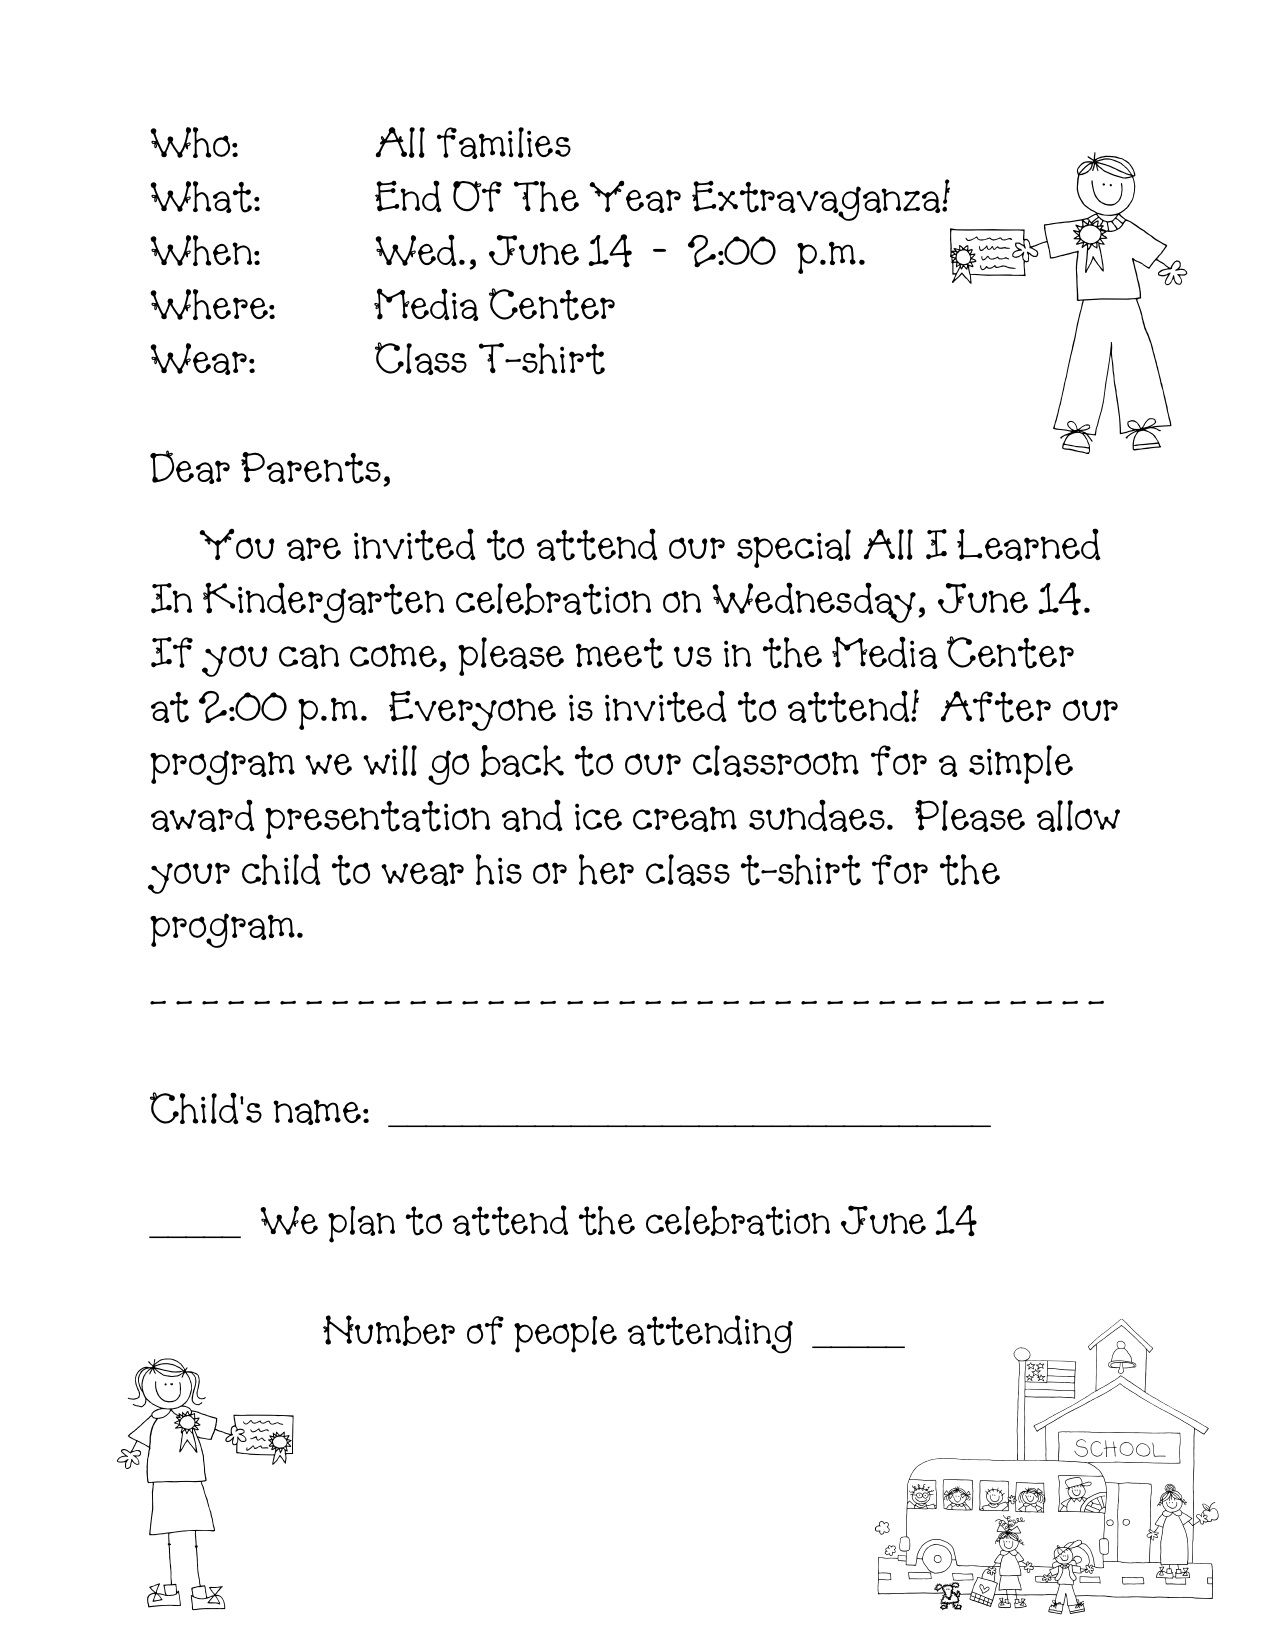 Parent Letter to Child Template - Preschool Graduation Program Sample Google Search